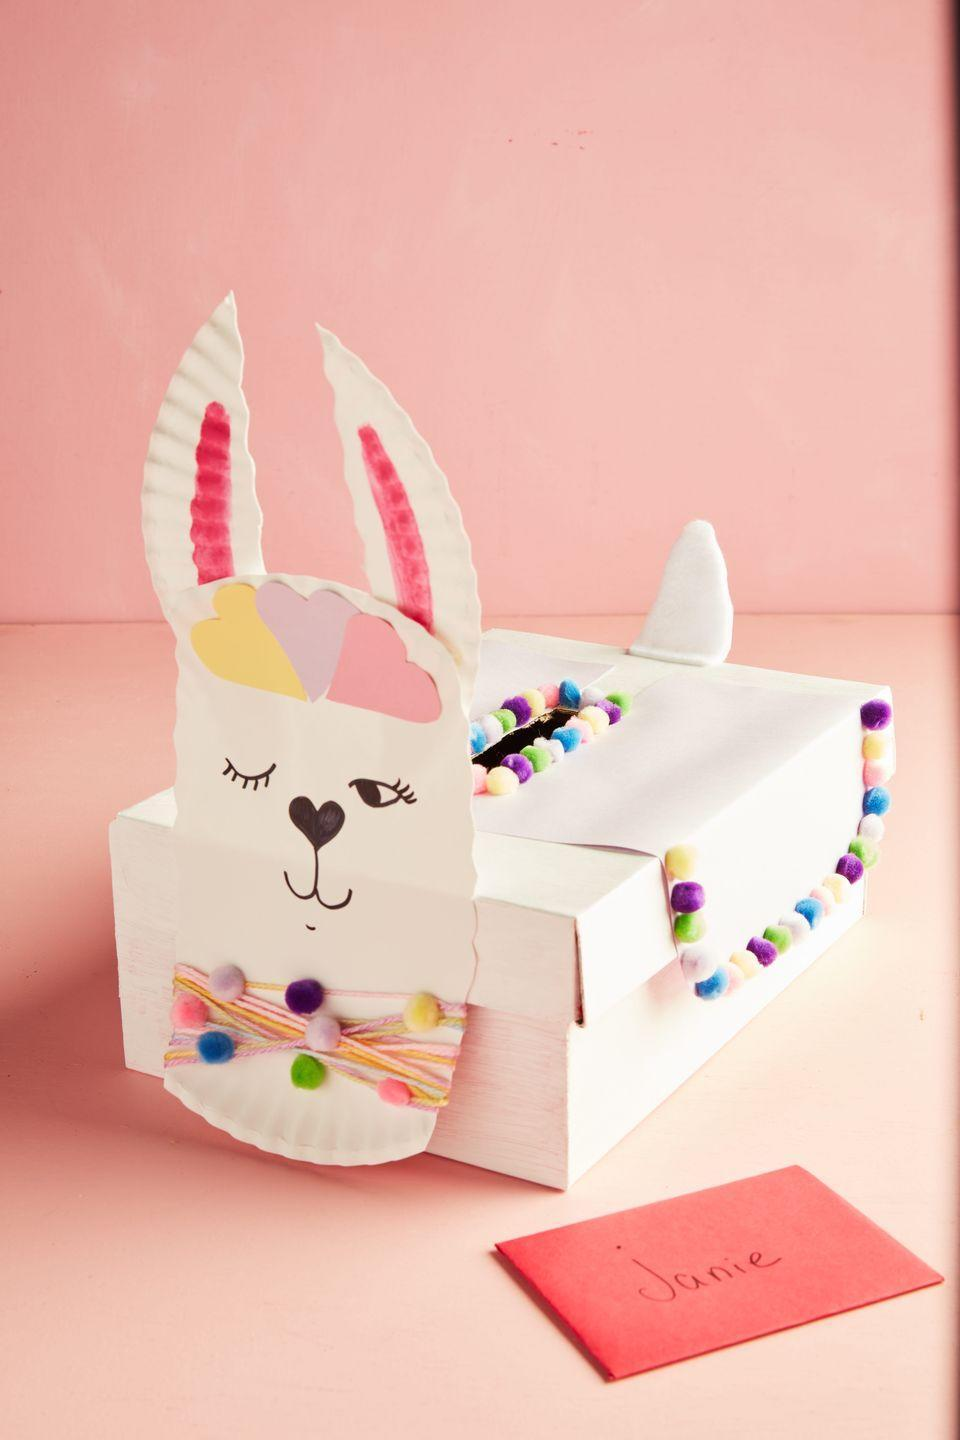 "<p>A wink and a smile welcome candy and cards to this sweet llama Valentine's box.</p><p><strong>To make:</strong> Wrap a <a href=""https://www.amazon.com/Factory-Direct-Craft-Decorate-Rectangle/dp/B00CMB8TCQ/ref=sr_1_44"" rel=""nofollow noopener"" target=""_blank"" data-ylk=""slk:papier-mâché box"" class=""link rapid-noclick-resp"">papier-mâché box</a> in white craft paper. Cut a slit in the top of the box. Add a saddle made from white office paper on either side of the slit. Decorate around the slit and along the bottom of the saddle with <a href=""https://www.amazon.com/Caydo-Pieces-Pompoms-Creative-Decorations/dp/B07S4MYG5Y/ref=sr_1_1_sspa"" rel=""nofollow noopener"" target=""_blank"" data-ylk=""slk:mini pom-poms"" class=""link rapid-noclick-resp"">mini pom-poms</a>, adhering them with hot glue. To create the face, cut two strips off opposite sides of a white paper plate. Color the center of the strips with a pink marker; adhere to the back of the plate to create the ears. Decorate the face with paper hearts. Draw on eyes, a heart-shaped nose, and mouth with black marker, and add yarn and mini pom-poms to create a ""collar""; adhere to the front of the box. Cut out a tail from white craft foam and attach to the back of the box with hot glue.</p><p><a class=""link rapid-noclick-resp"" href=""https://www.amazon.com/Sheets-Better-Office-Products-Crafts/dp/B089DT3TC9/ref=sr_1_3?tag=syn-yahoo-20&ascsubtag=%5Bartid%7C10050.g.25844424%5Bsrc%7Cyahoo-us"" rel=""nofollow noopener"" target=""_blank"" data-ylk=""slk:SHOP CRAFT FOAM"">SHOP CRAFT FOAM</a></p>"